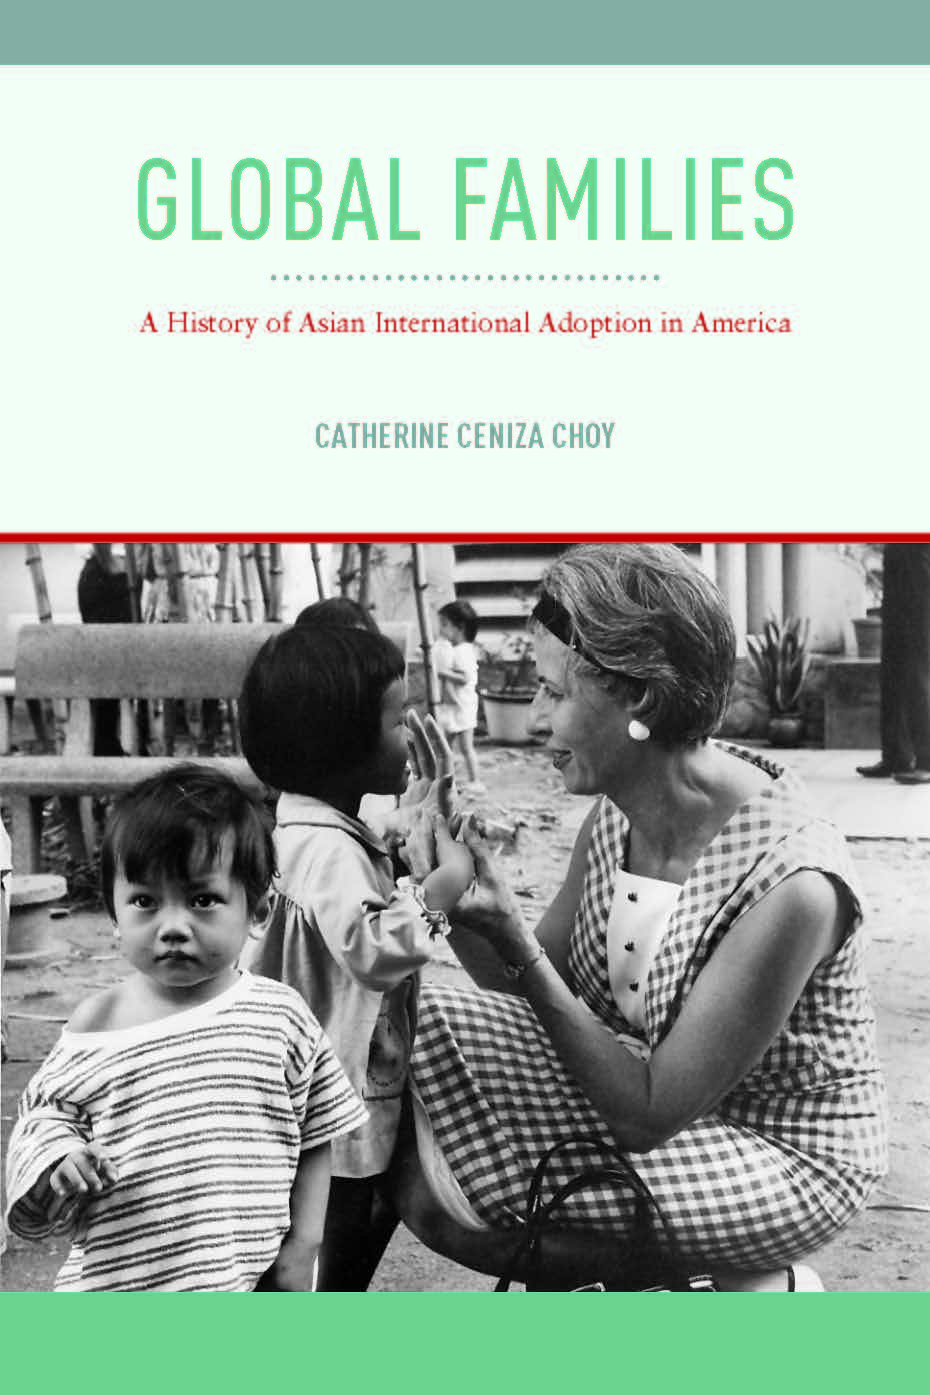 Image of book cover of Global Families by Catherine Choy